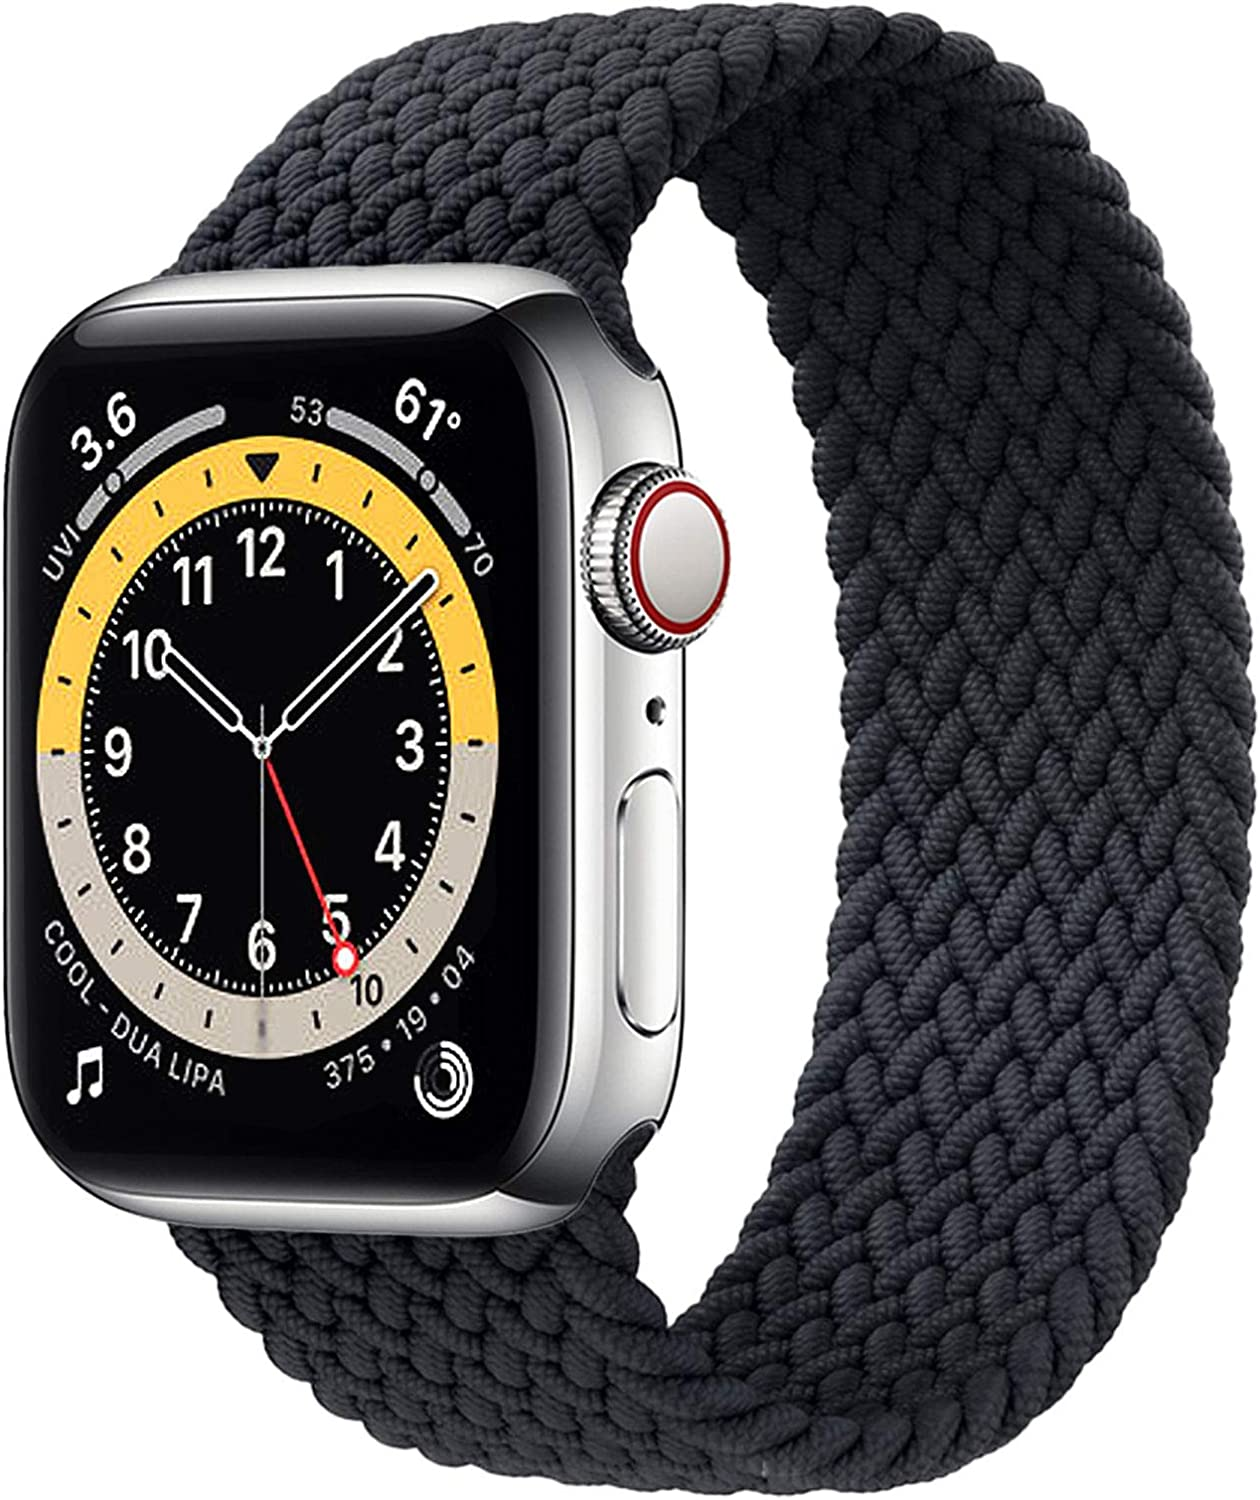 WAAILU Solo Loop Braided Band Woven Compatible for Apple Watch SE Series 6 40mm 44mm Compatible for Iwatch 5/4/3/2/1 38mm 42mm-(Charcoal-38/40-6)